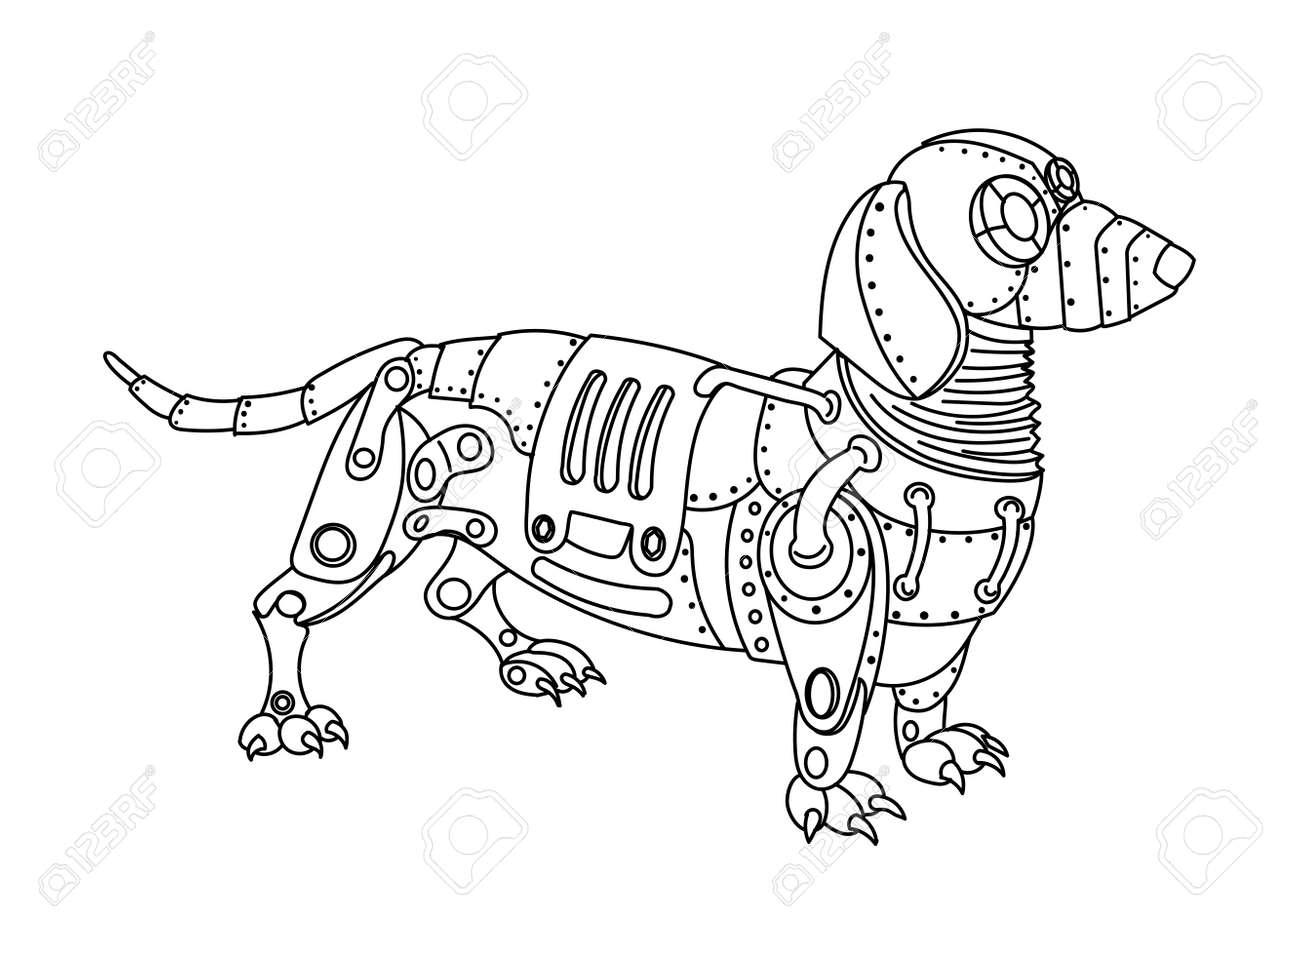 ste unk style dachshund dog mechanical animal coloring book  ste unk style dachshund dog mechanical animal coloring book for adult illustration stock vector